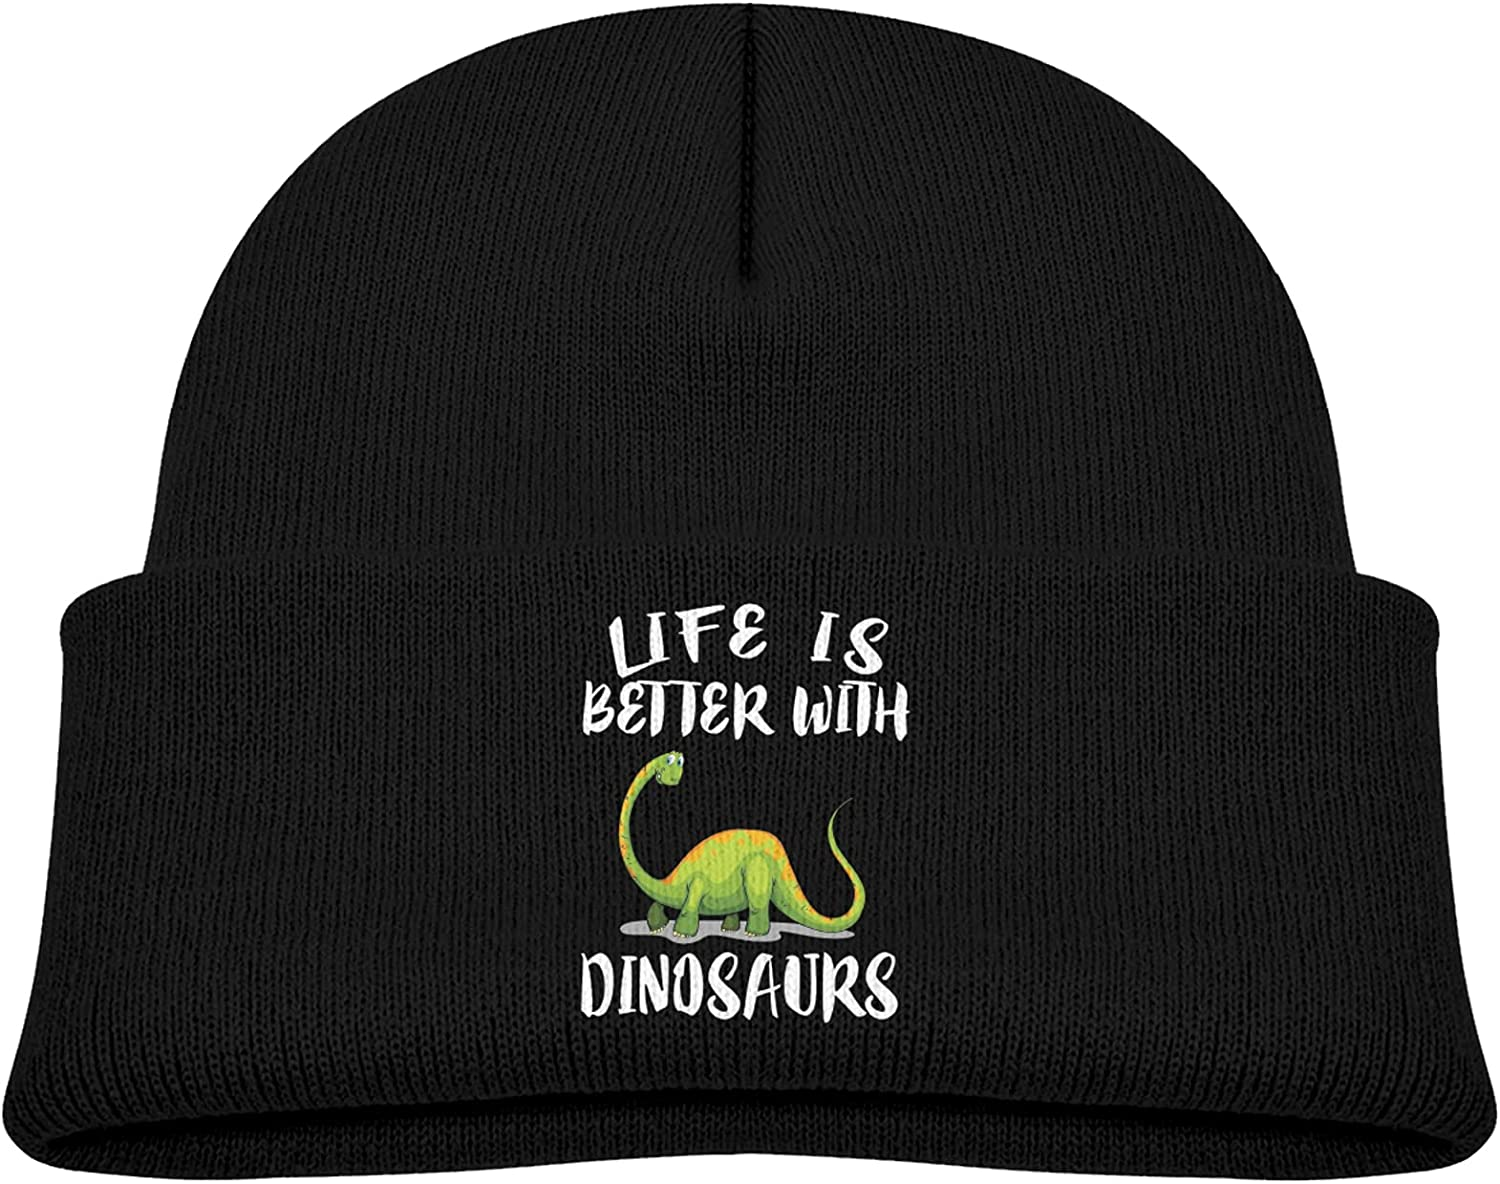 Life is Better Austin Mall with Dinosaurs Hat 2021 new Knitted Woolen Children's